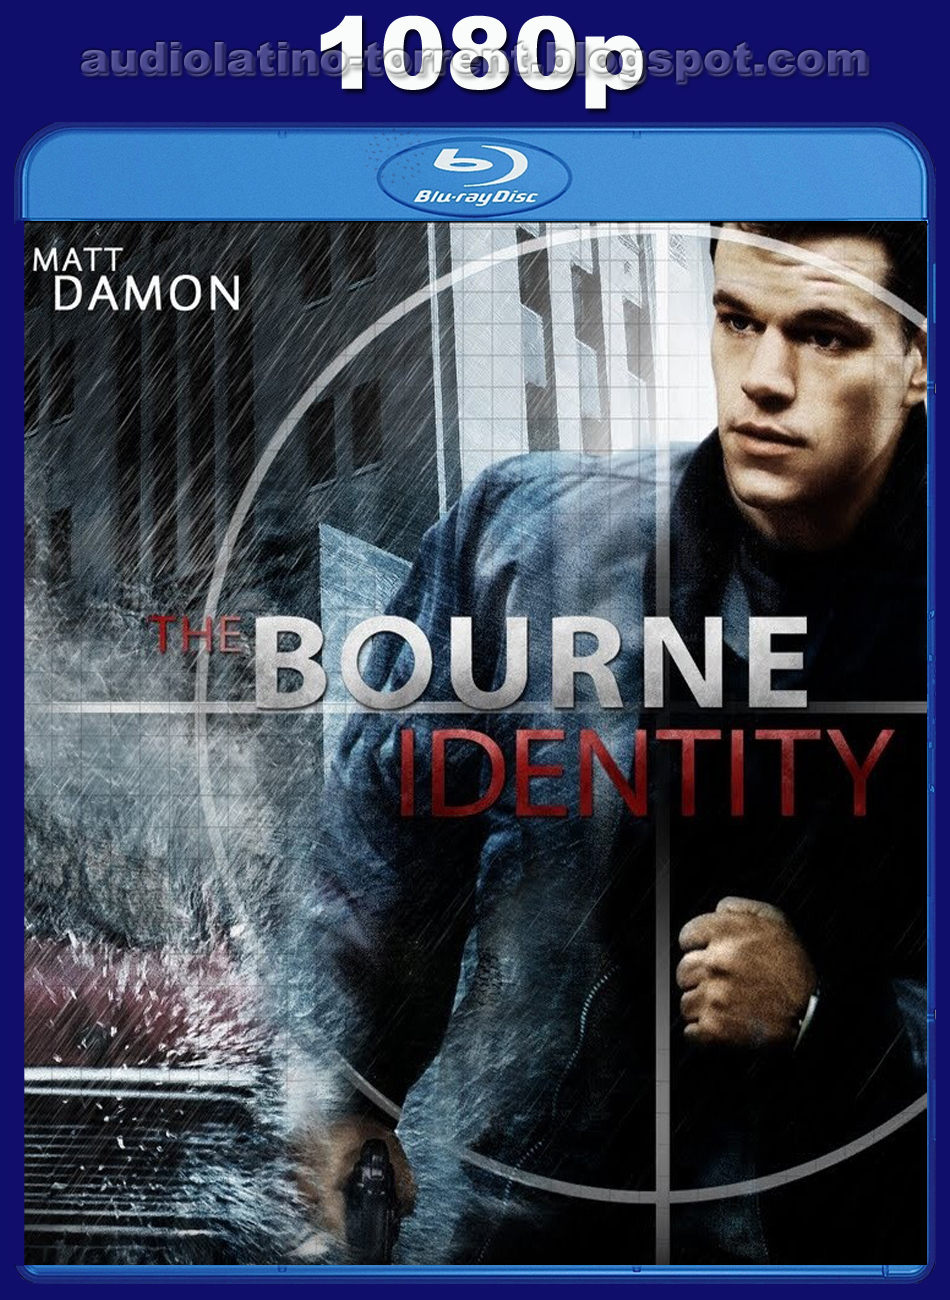 the bourne identity essay example The bourne identity essaysthe bourne identity directed by doug liman tries to create suspense by assigning the difficult mission of @example essays the bourne.